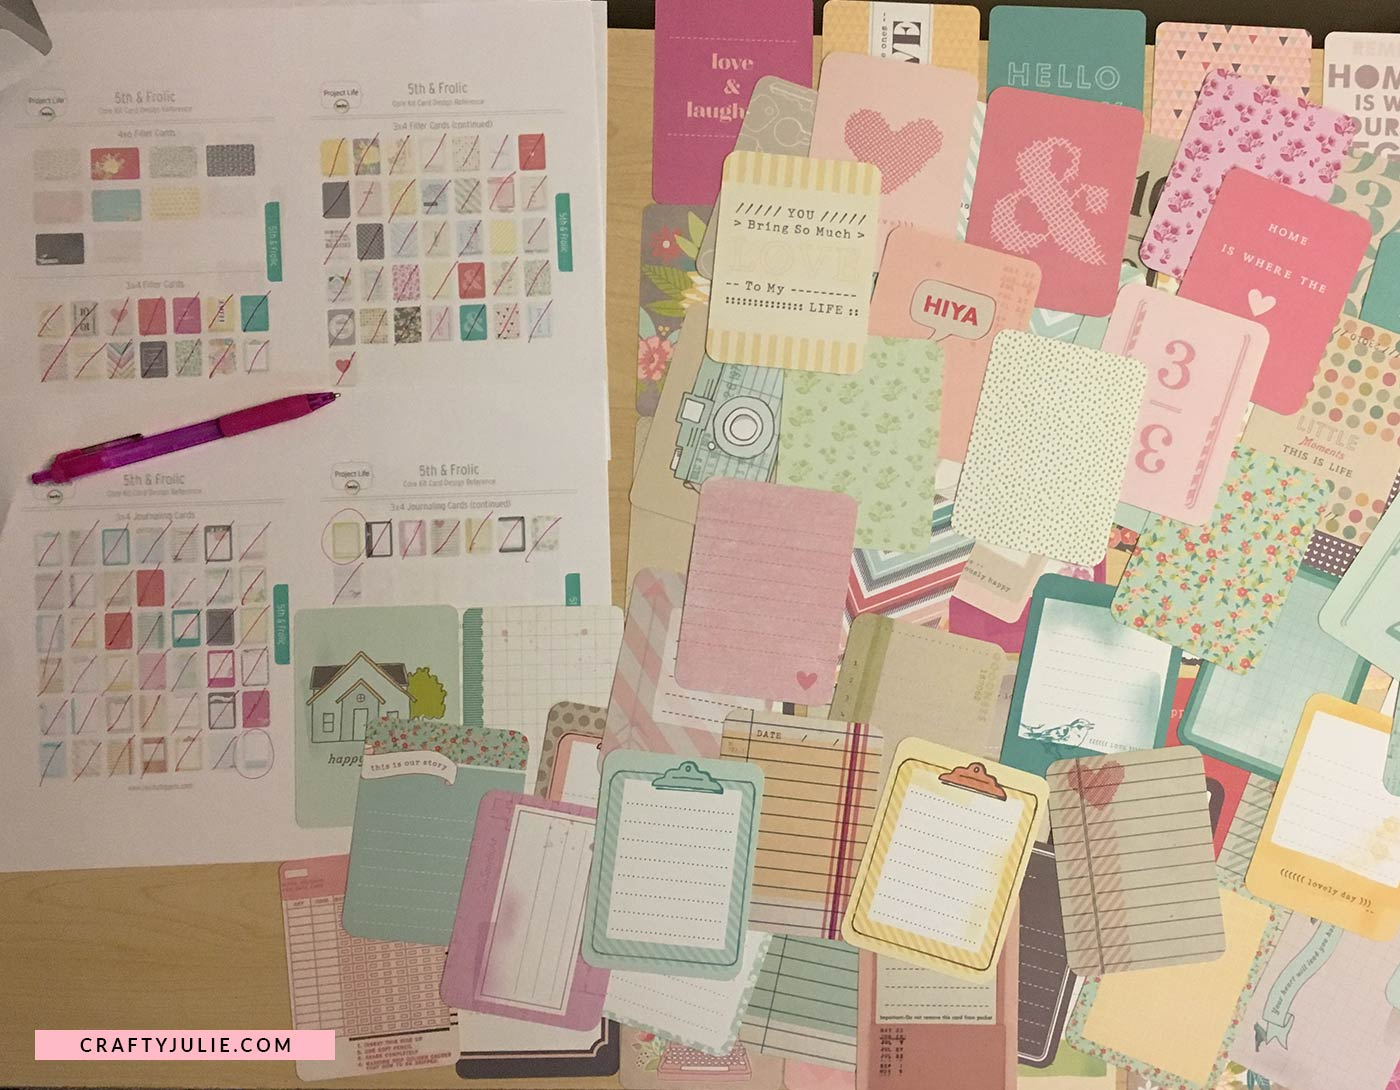 Crafty Julie | 5 Easy Steps to Organize Project Life Cards | Sorted Core Kit using Card Reference Sheet